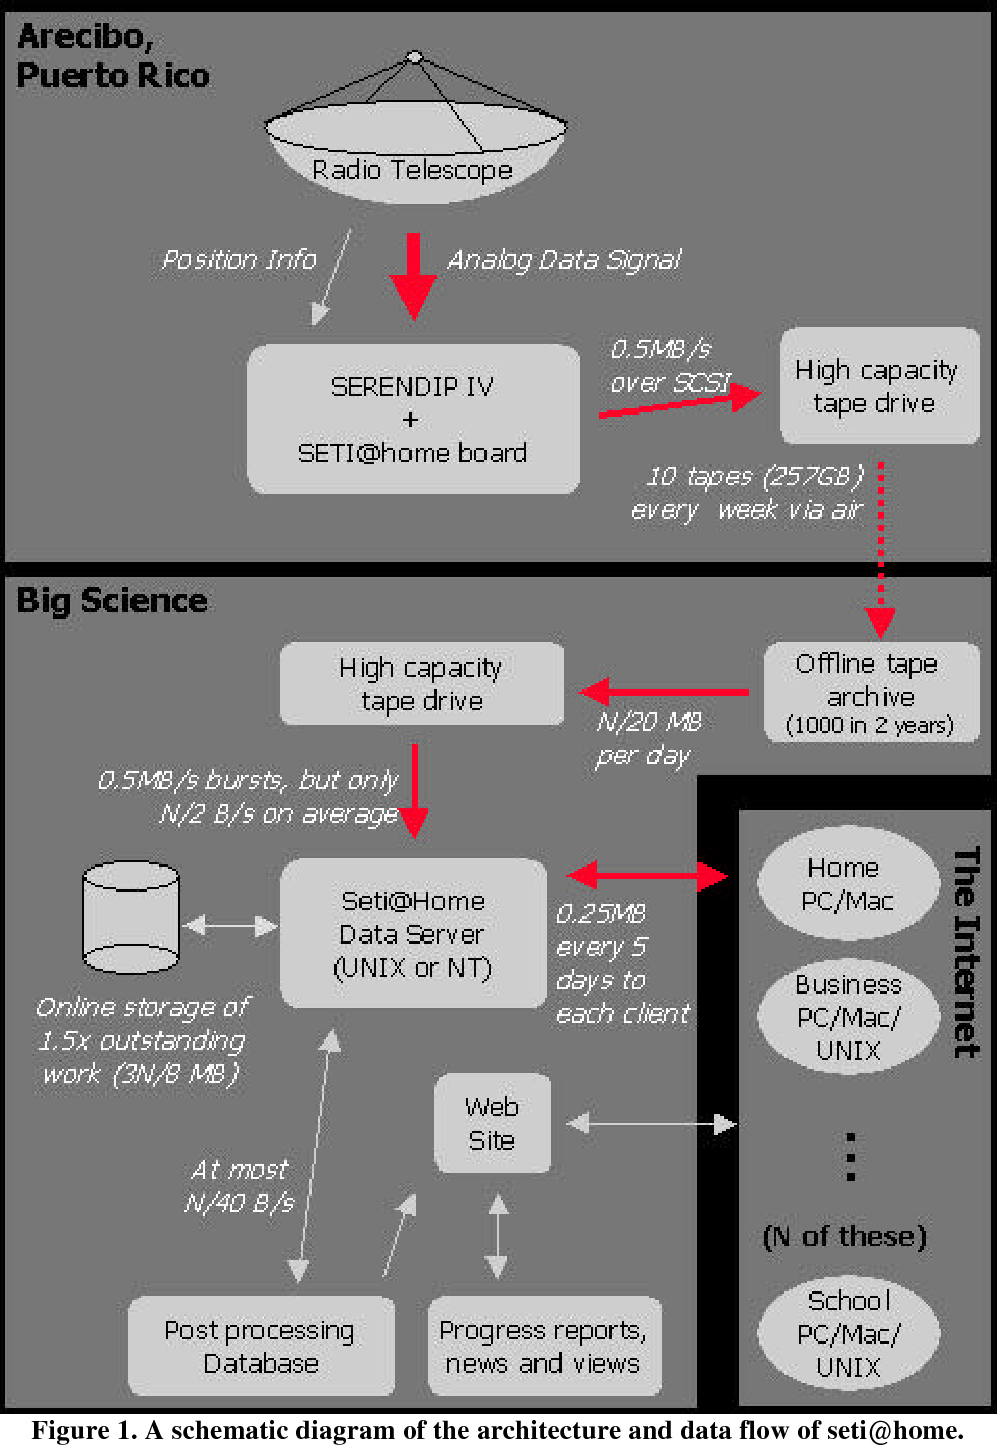 PDF] A New Major Seti Project Based on Project Serendip Data